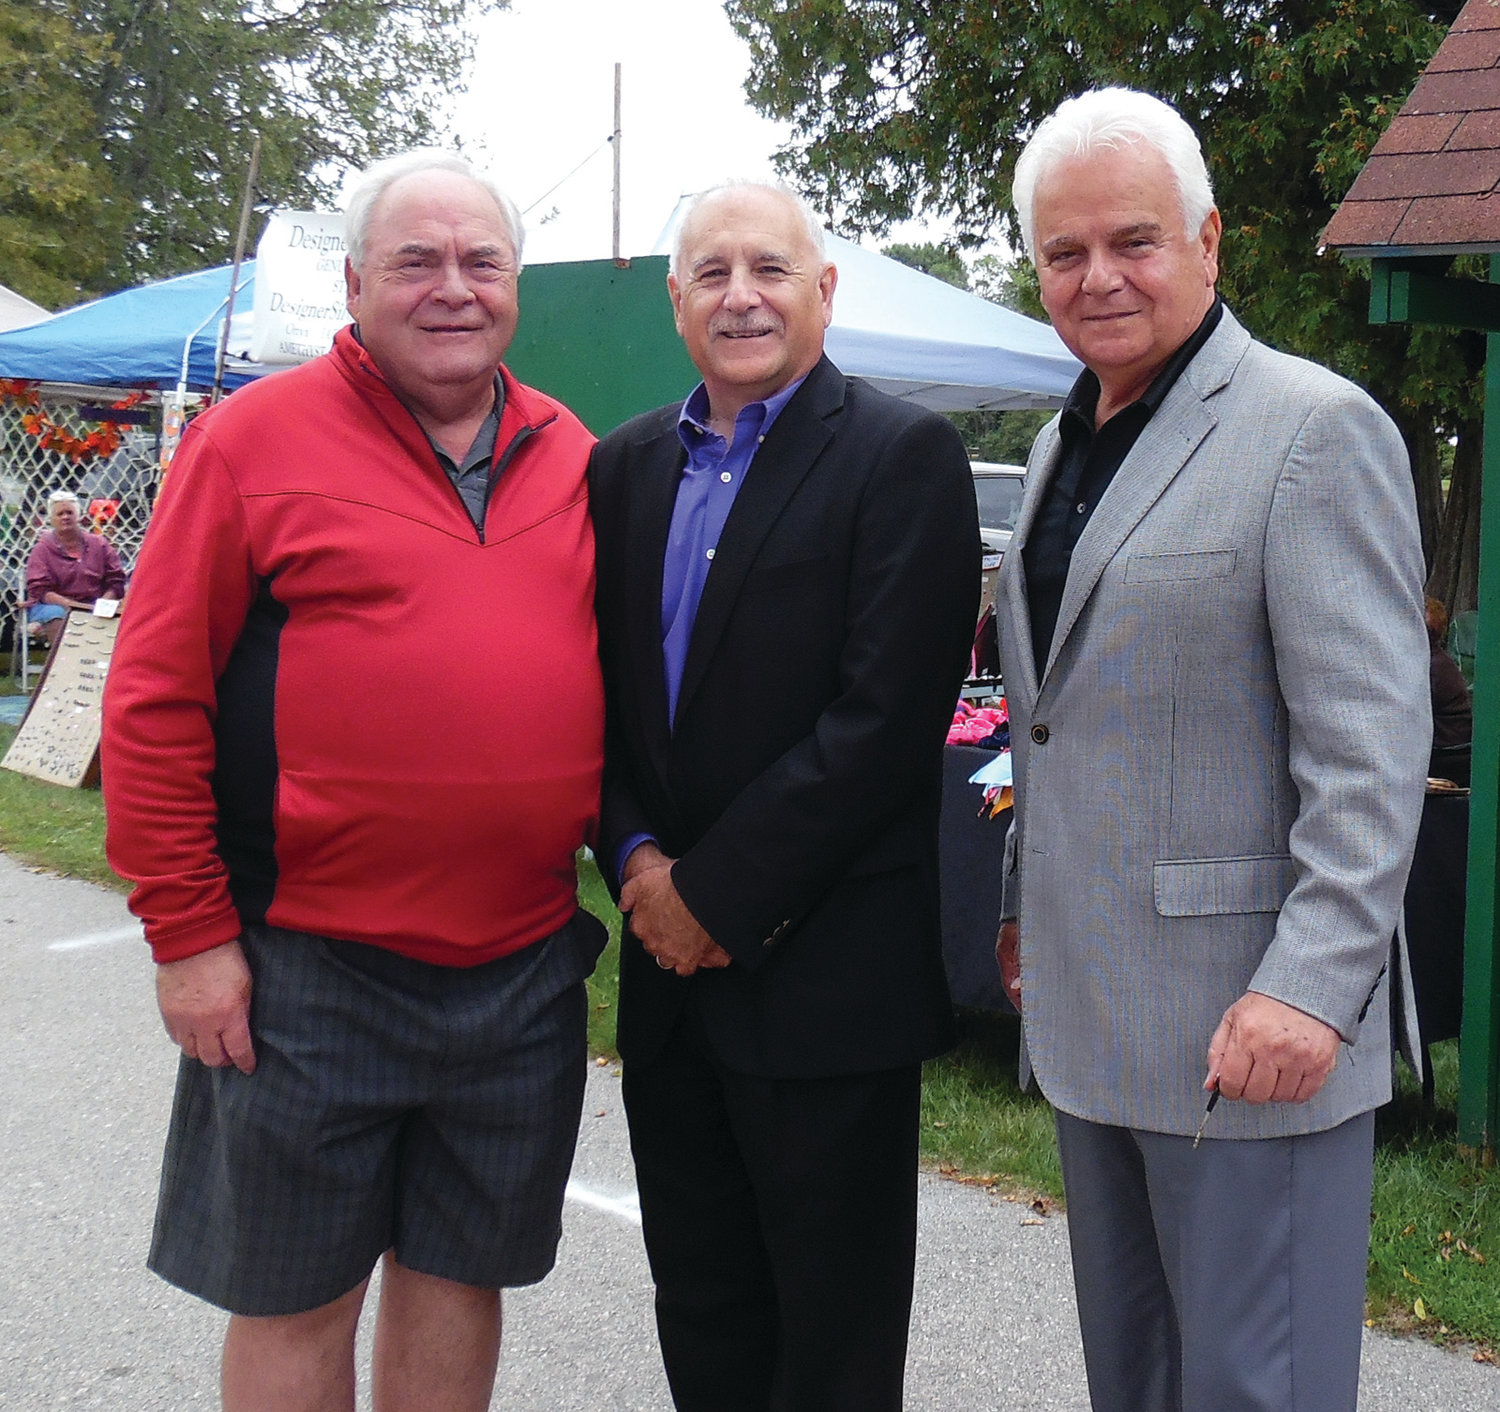 A MELANCHOLY OCCASION: Northern Rhode Island Chamber of Commerce President John Gregory (left), seen here with Mayor Joseph Polisena and Police Chief Richard Tamburini, retired after 27 years in his post last Friday. Gregory said it was a melancholy day as he reflected on his time at the Chamber.